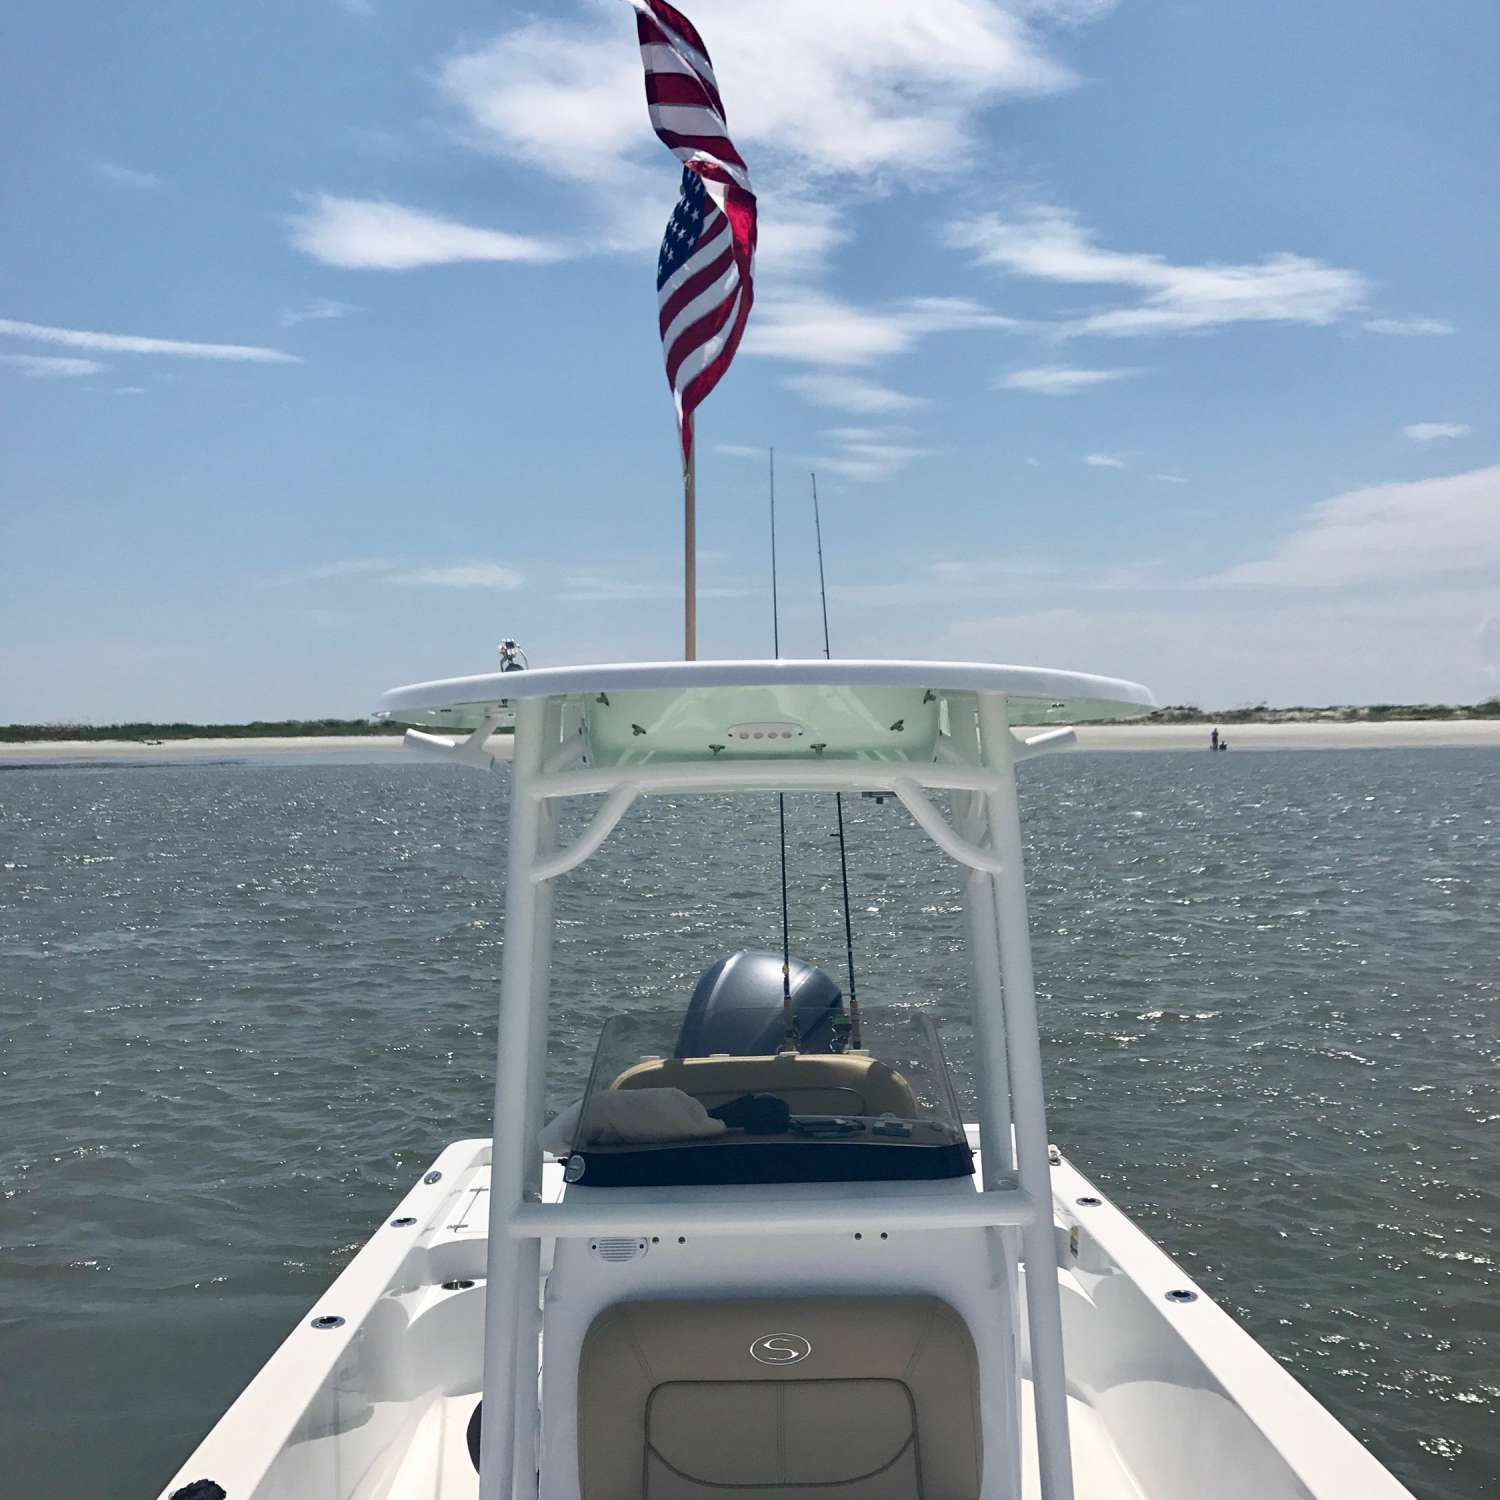 Title: Merica - On board their Sportsman Masters 247 Bay Boat - Location: Greer, South Carolina. Participating in the Photo Contest #SportsmanAugust2017